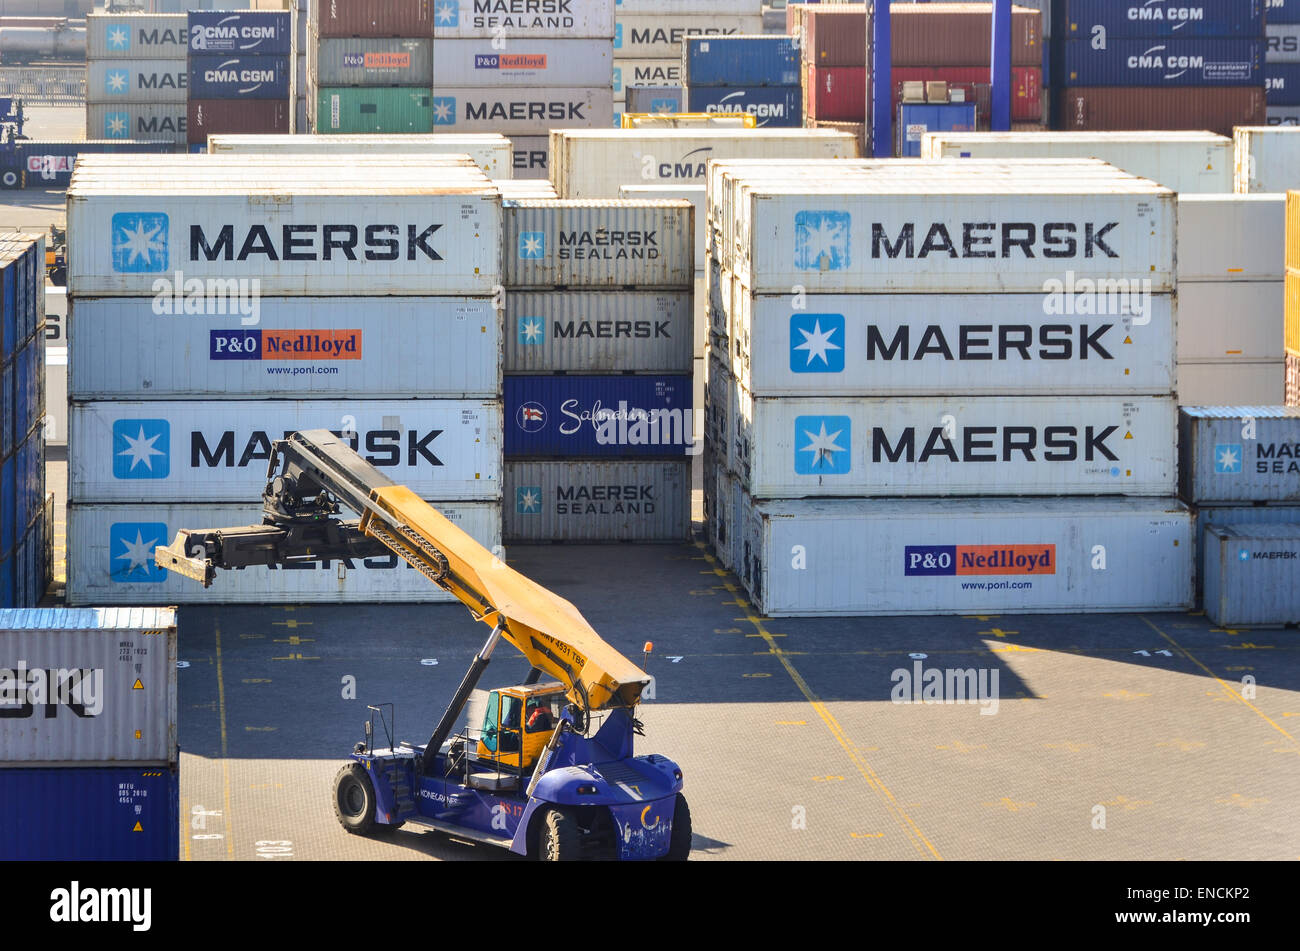 Maersk and Safmarine containers at the container terminal of the port of Walvis Bay, Namibia - Stock Image